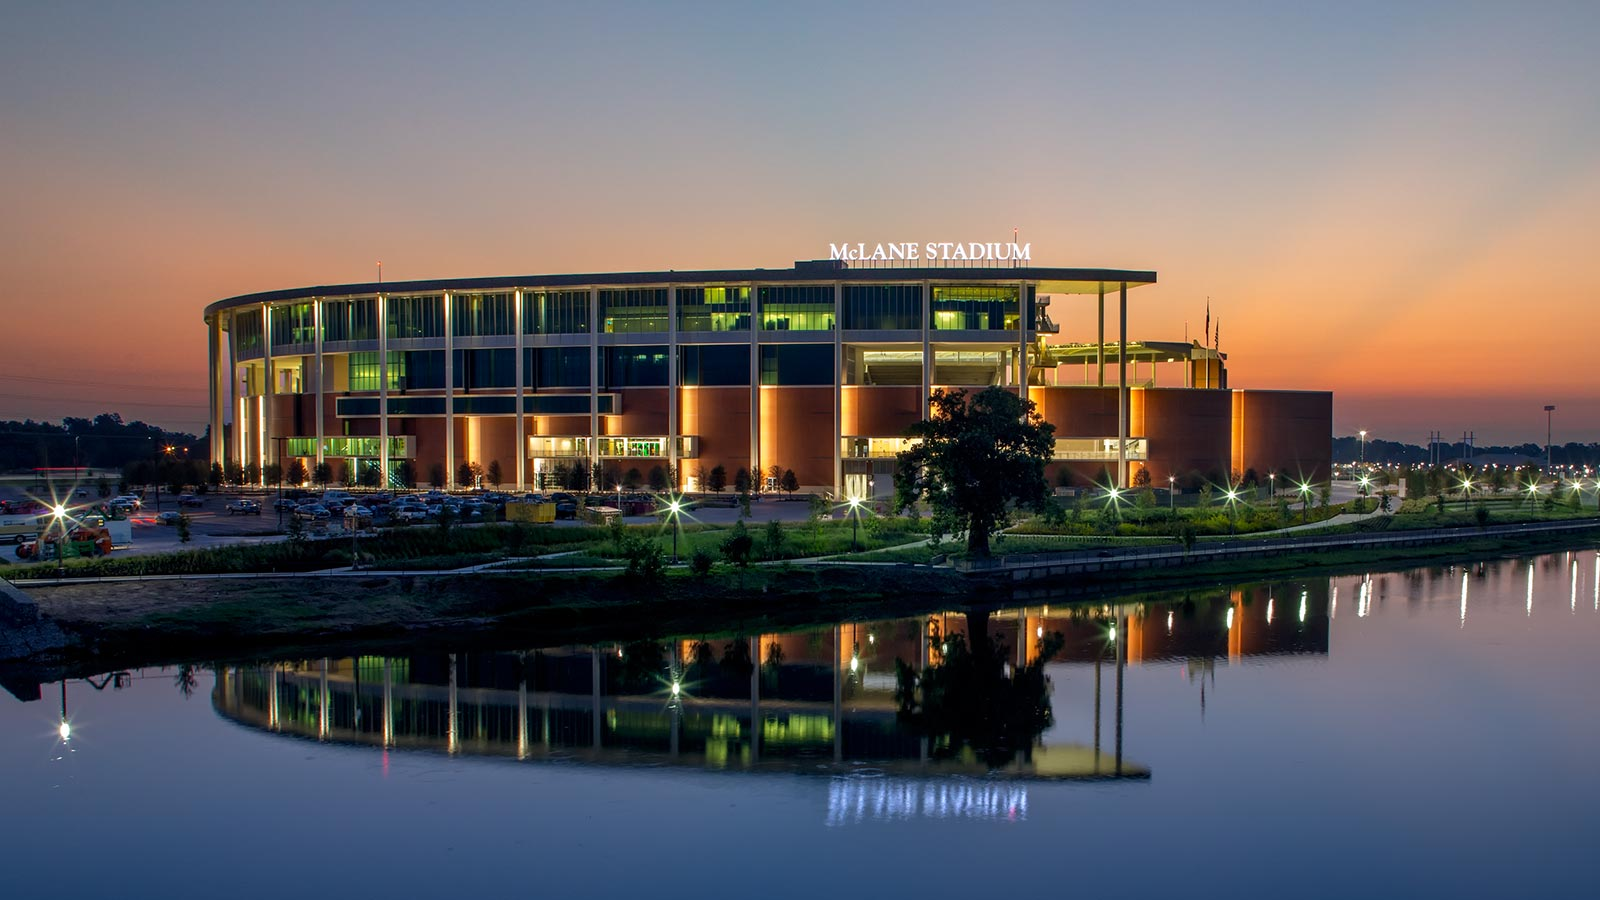 Located on the banks of the Brazos River the 45,000-seat McLane Stadium is home to Baylor Bear football.